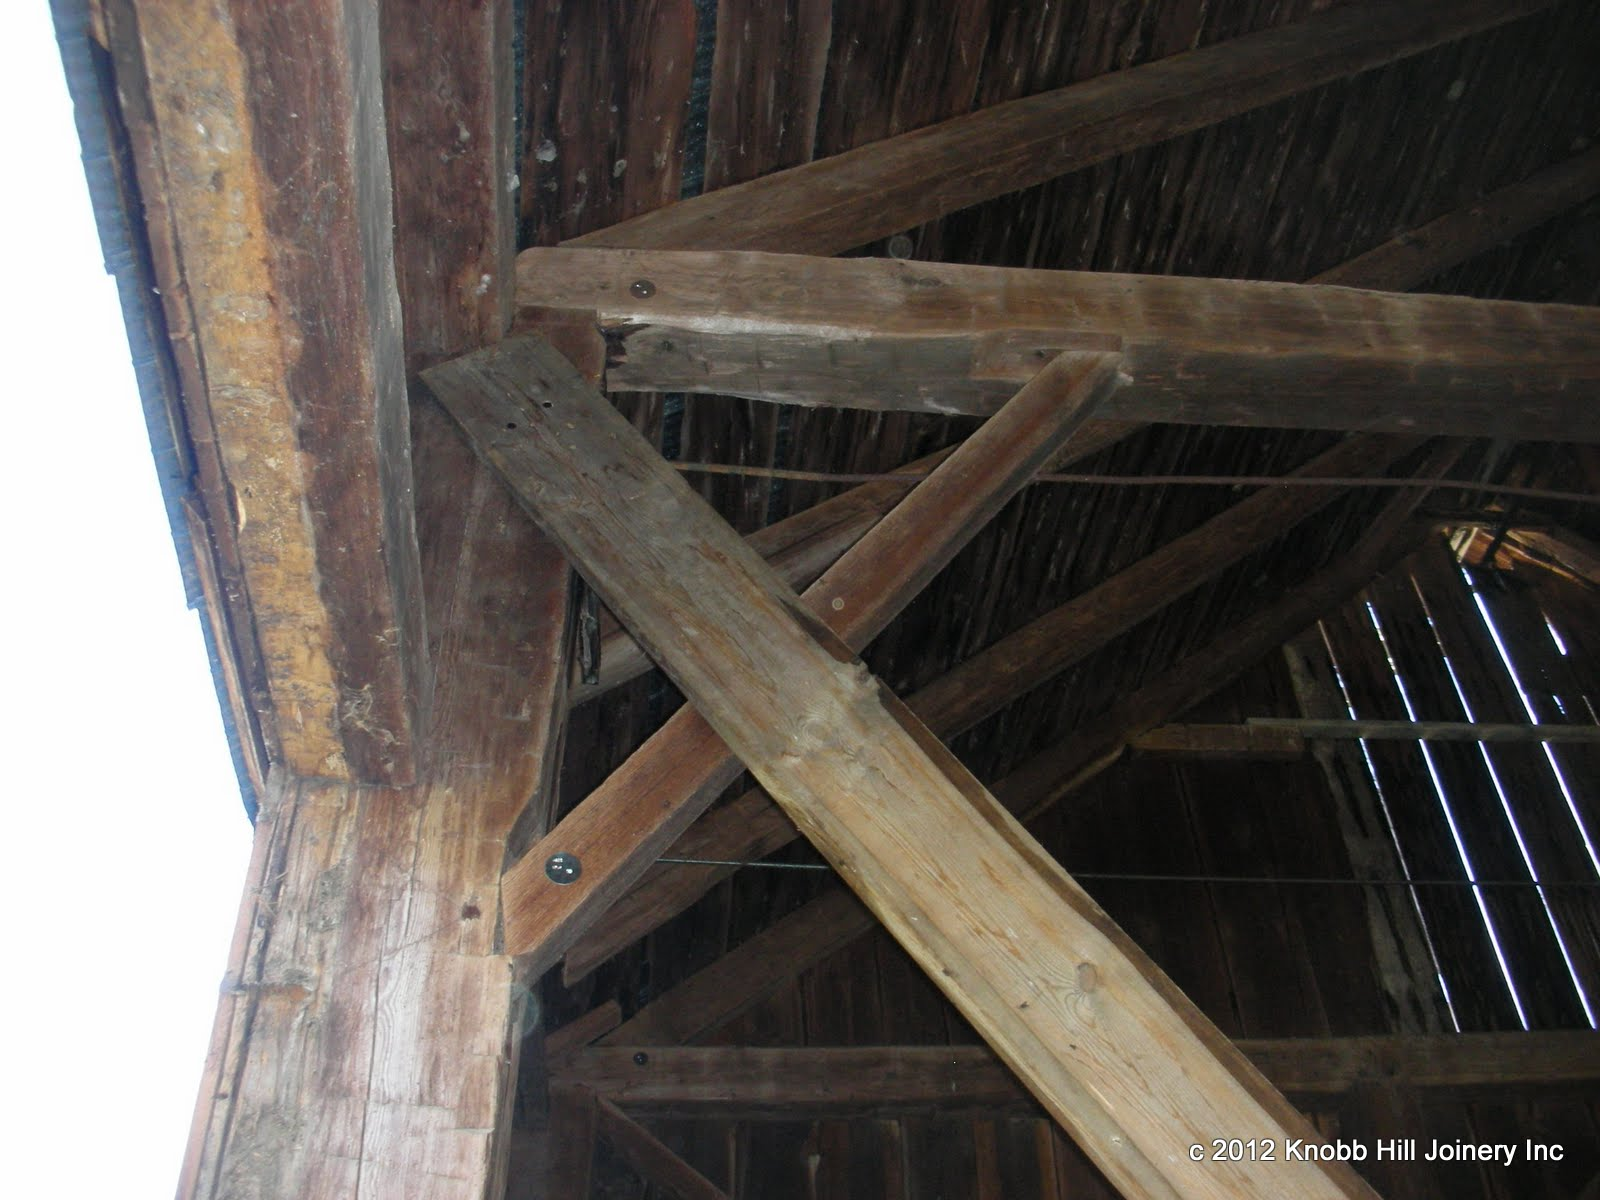 The only tie beam brace that was in place when we first saw the barn clearly did not fit.  The rest of the tie braces were missing altogether.